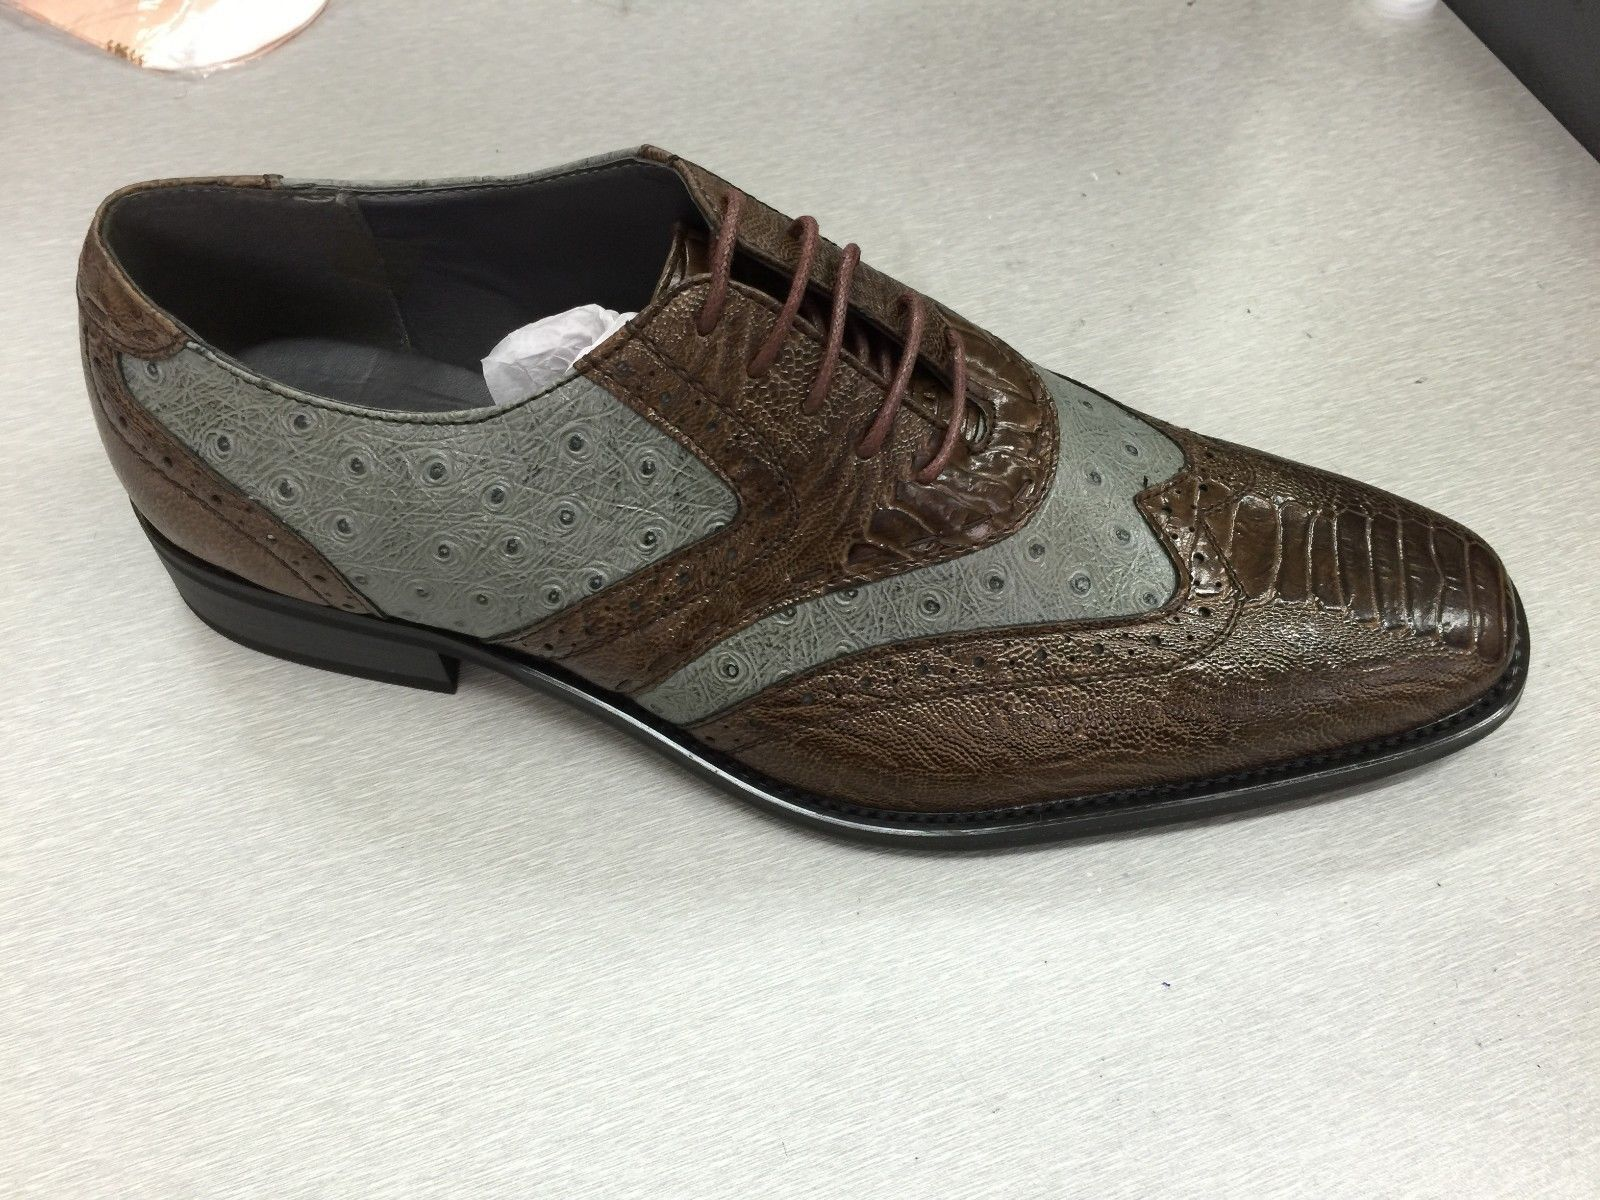 Gentleman/Lady Shoes Men's Wing-tip Design Dress Shoes Gentleman/Lady Animal/Ostrich/Alligator Print Brown/Gray 5750 sell Sales Italy Brand feast VW368 5bd5c8